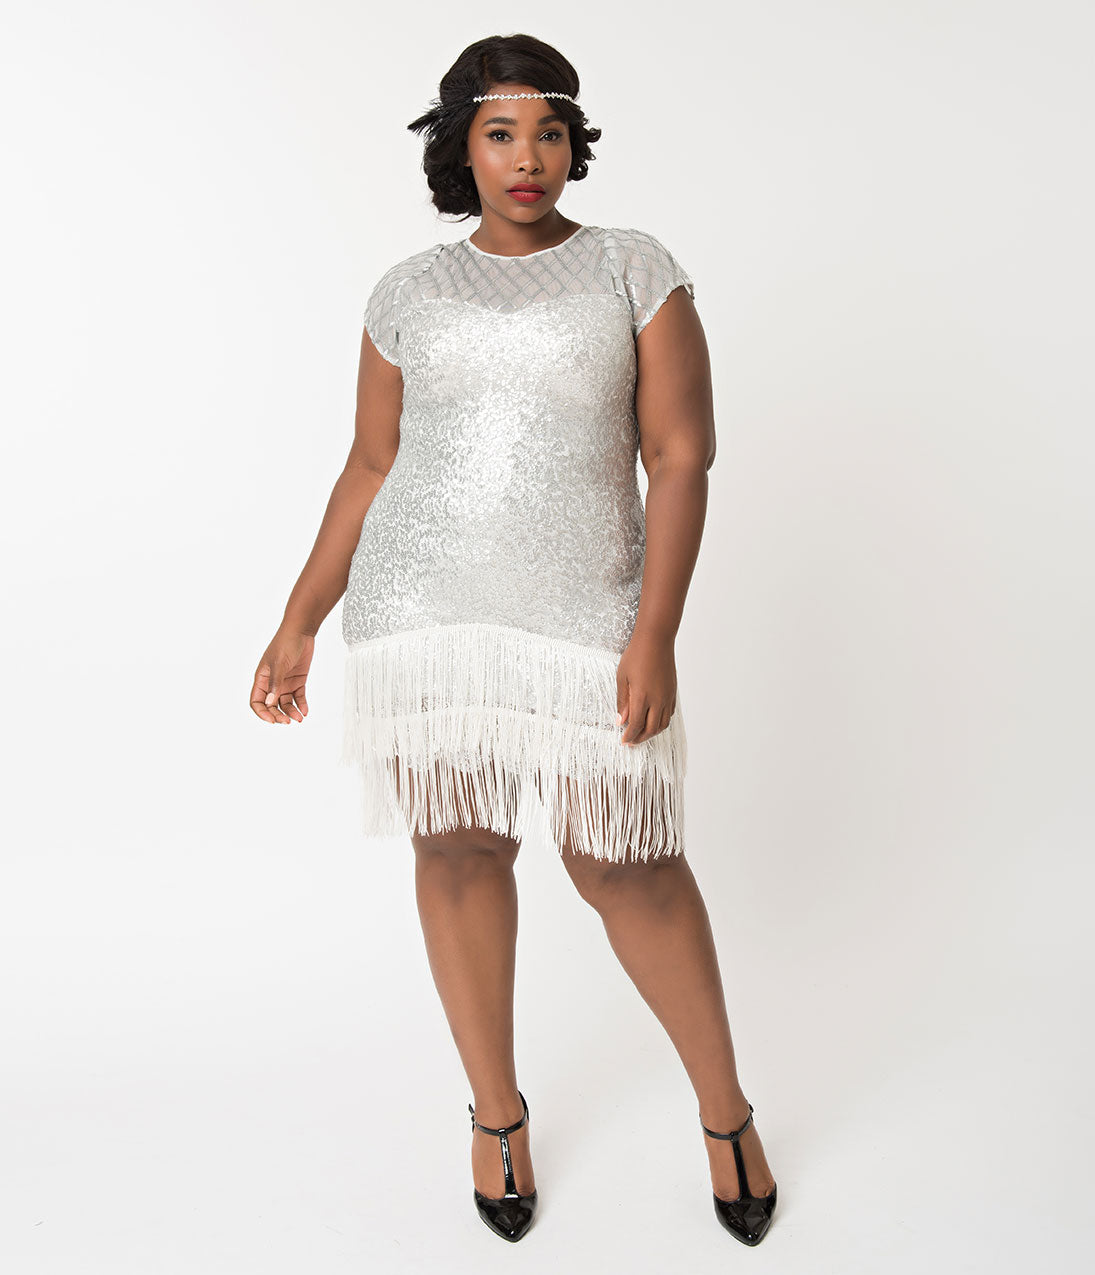 1920s Plus Size Flapper Dresses, Gatsby Dresses, Flapper Costumes Unique Vintage Plus Size 1920S Antique Silver Sequin Fringe Del Mar Flapper Dress $58.00 AT vintagedancer.com